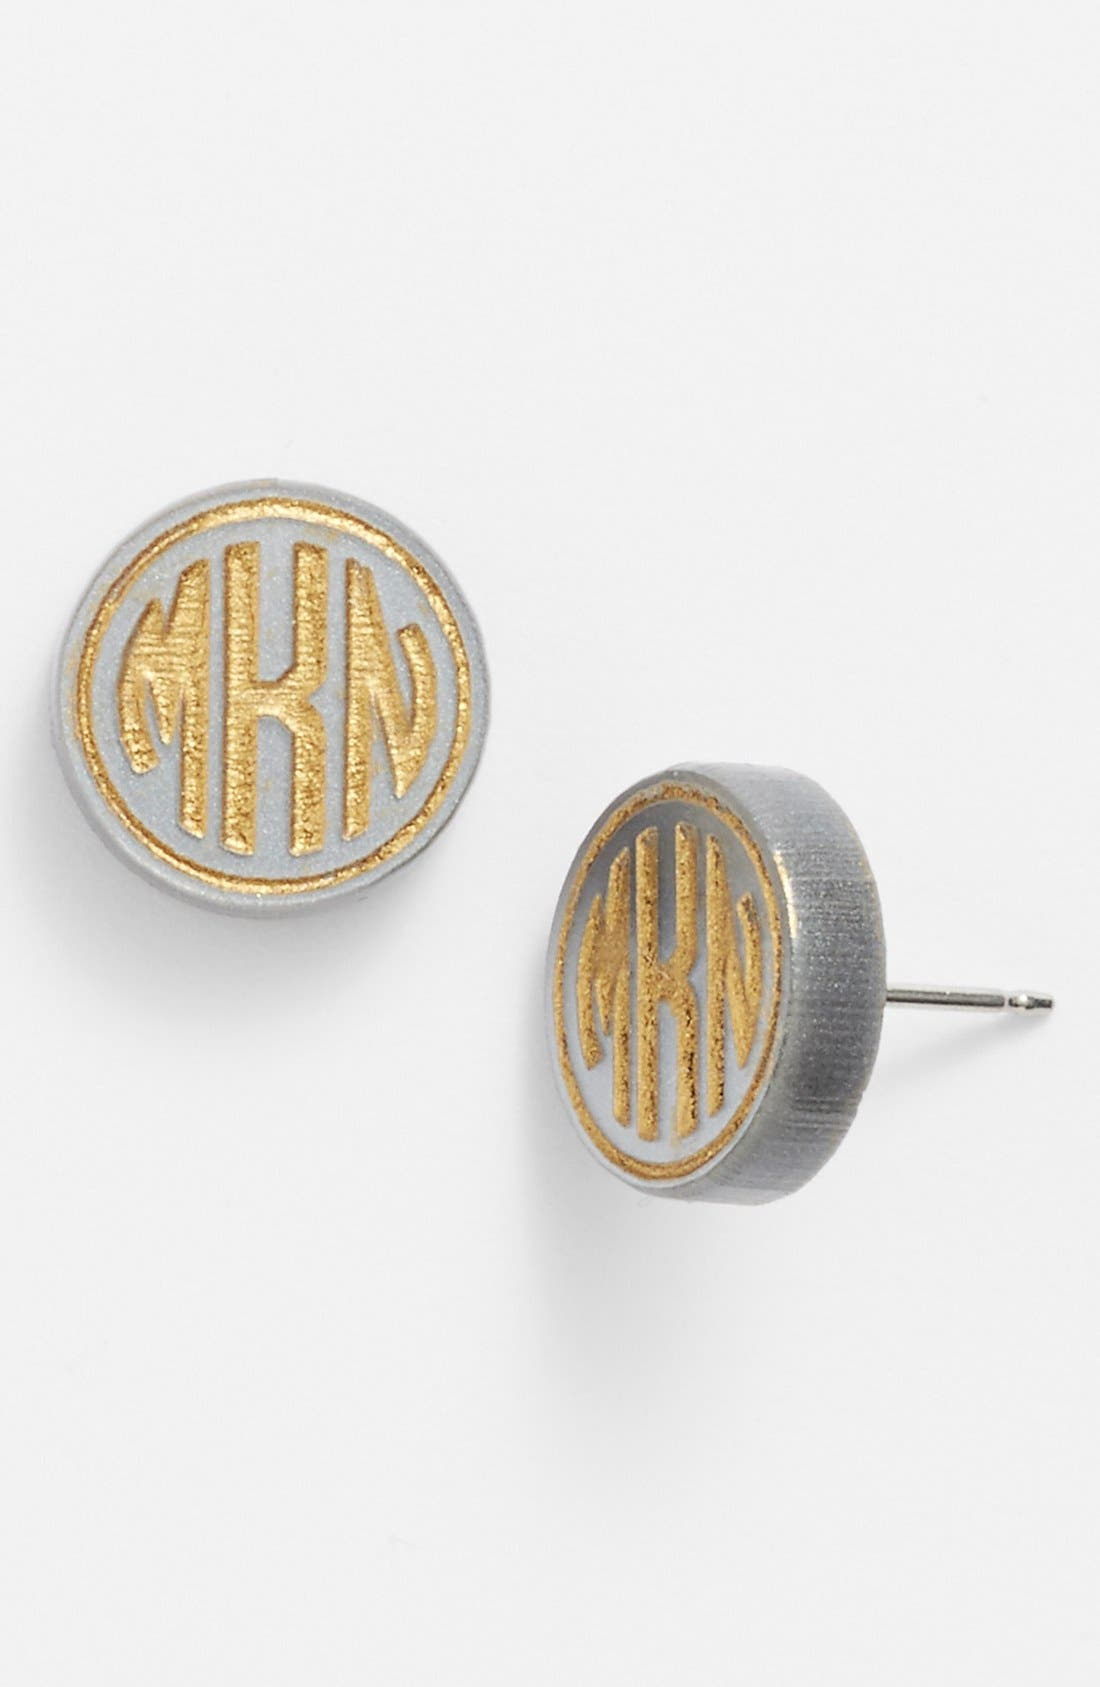 'Chelsea' Small Personalized Monogram Stud Earrings,                         Main,                         color, GUNMETAL/ GOLD